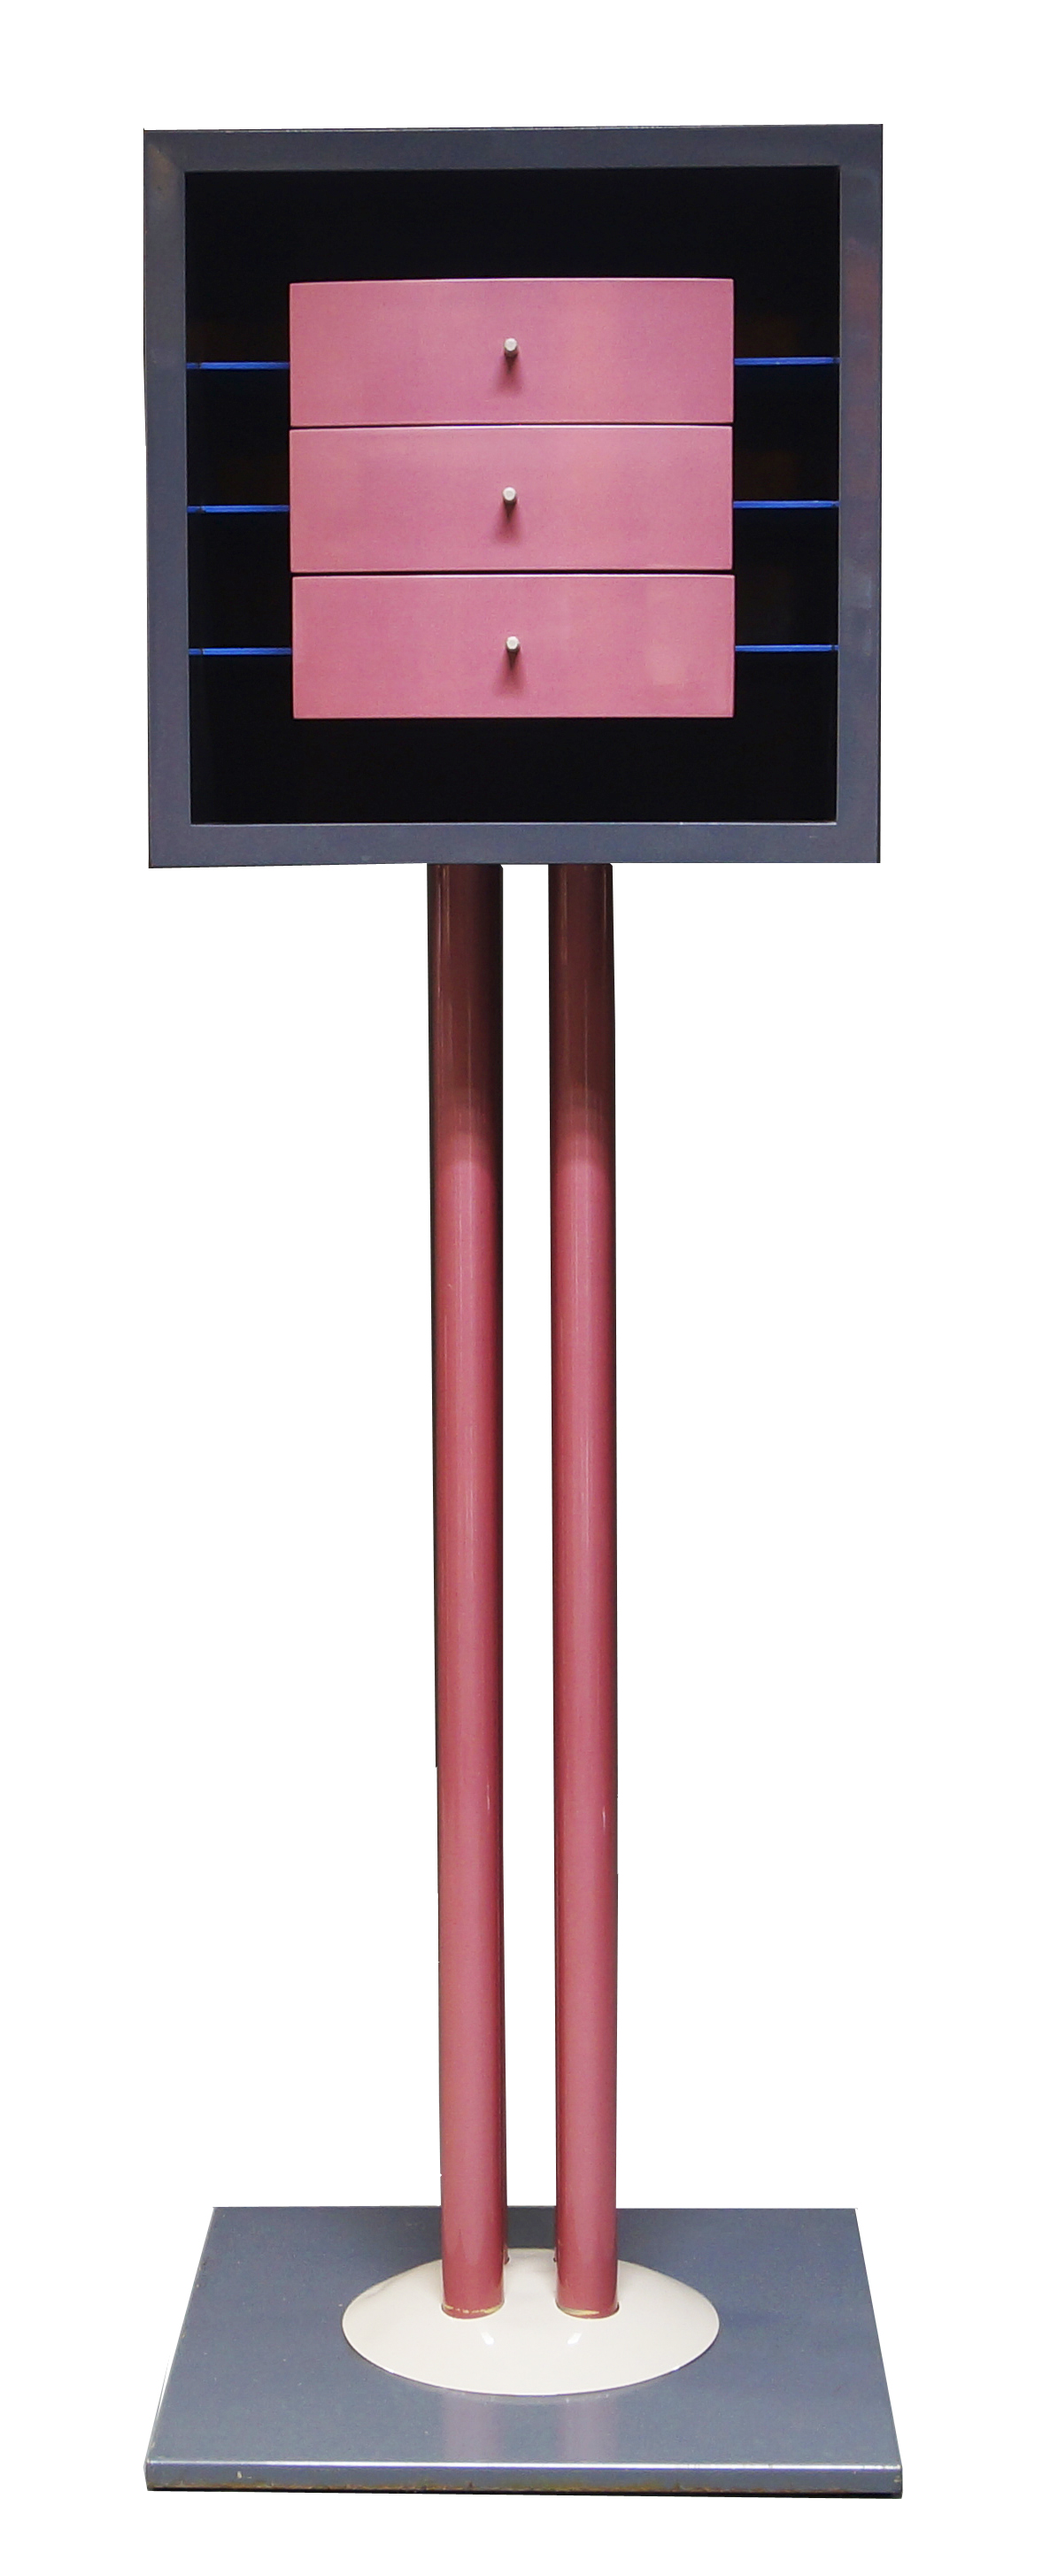 Shiro Kuramata for Memphis Milan, a Nikko cabinet, designed and executed in 1982, lacquered wood and lacquered metal, silver label to reverse, Memphis, Made in Italy, Milano, Shiro Kuramata 1982, no 02 175cm high x 57cm square Estimate: £8 000 – 12 000